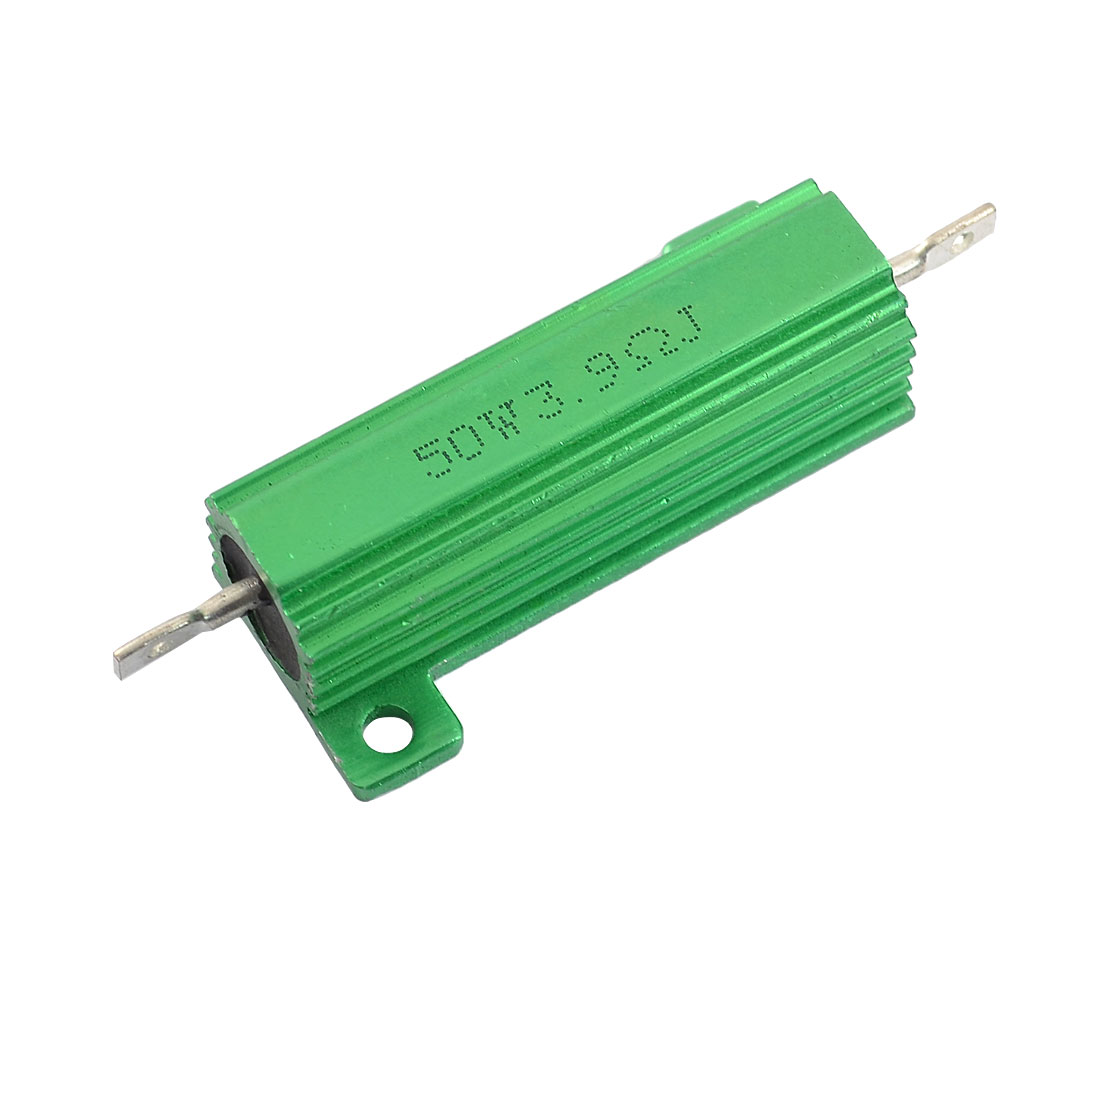 50W 3.9 Ohm 5% Chassis Mounted Aluminum Case Wirewound Resistor Green